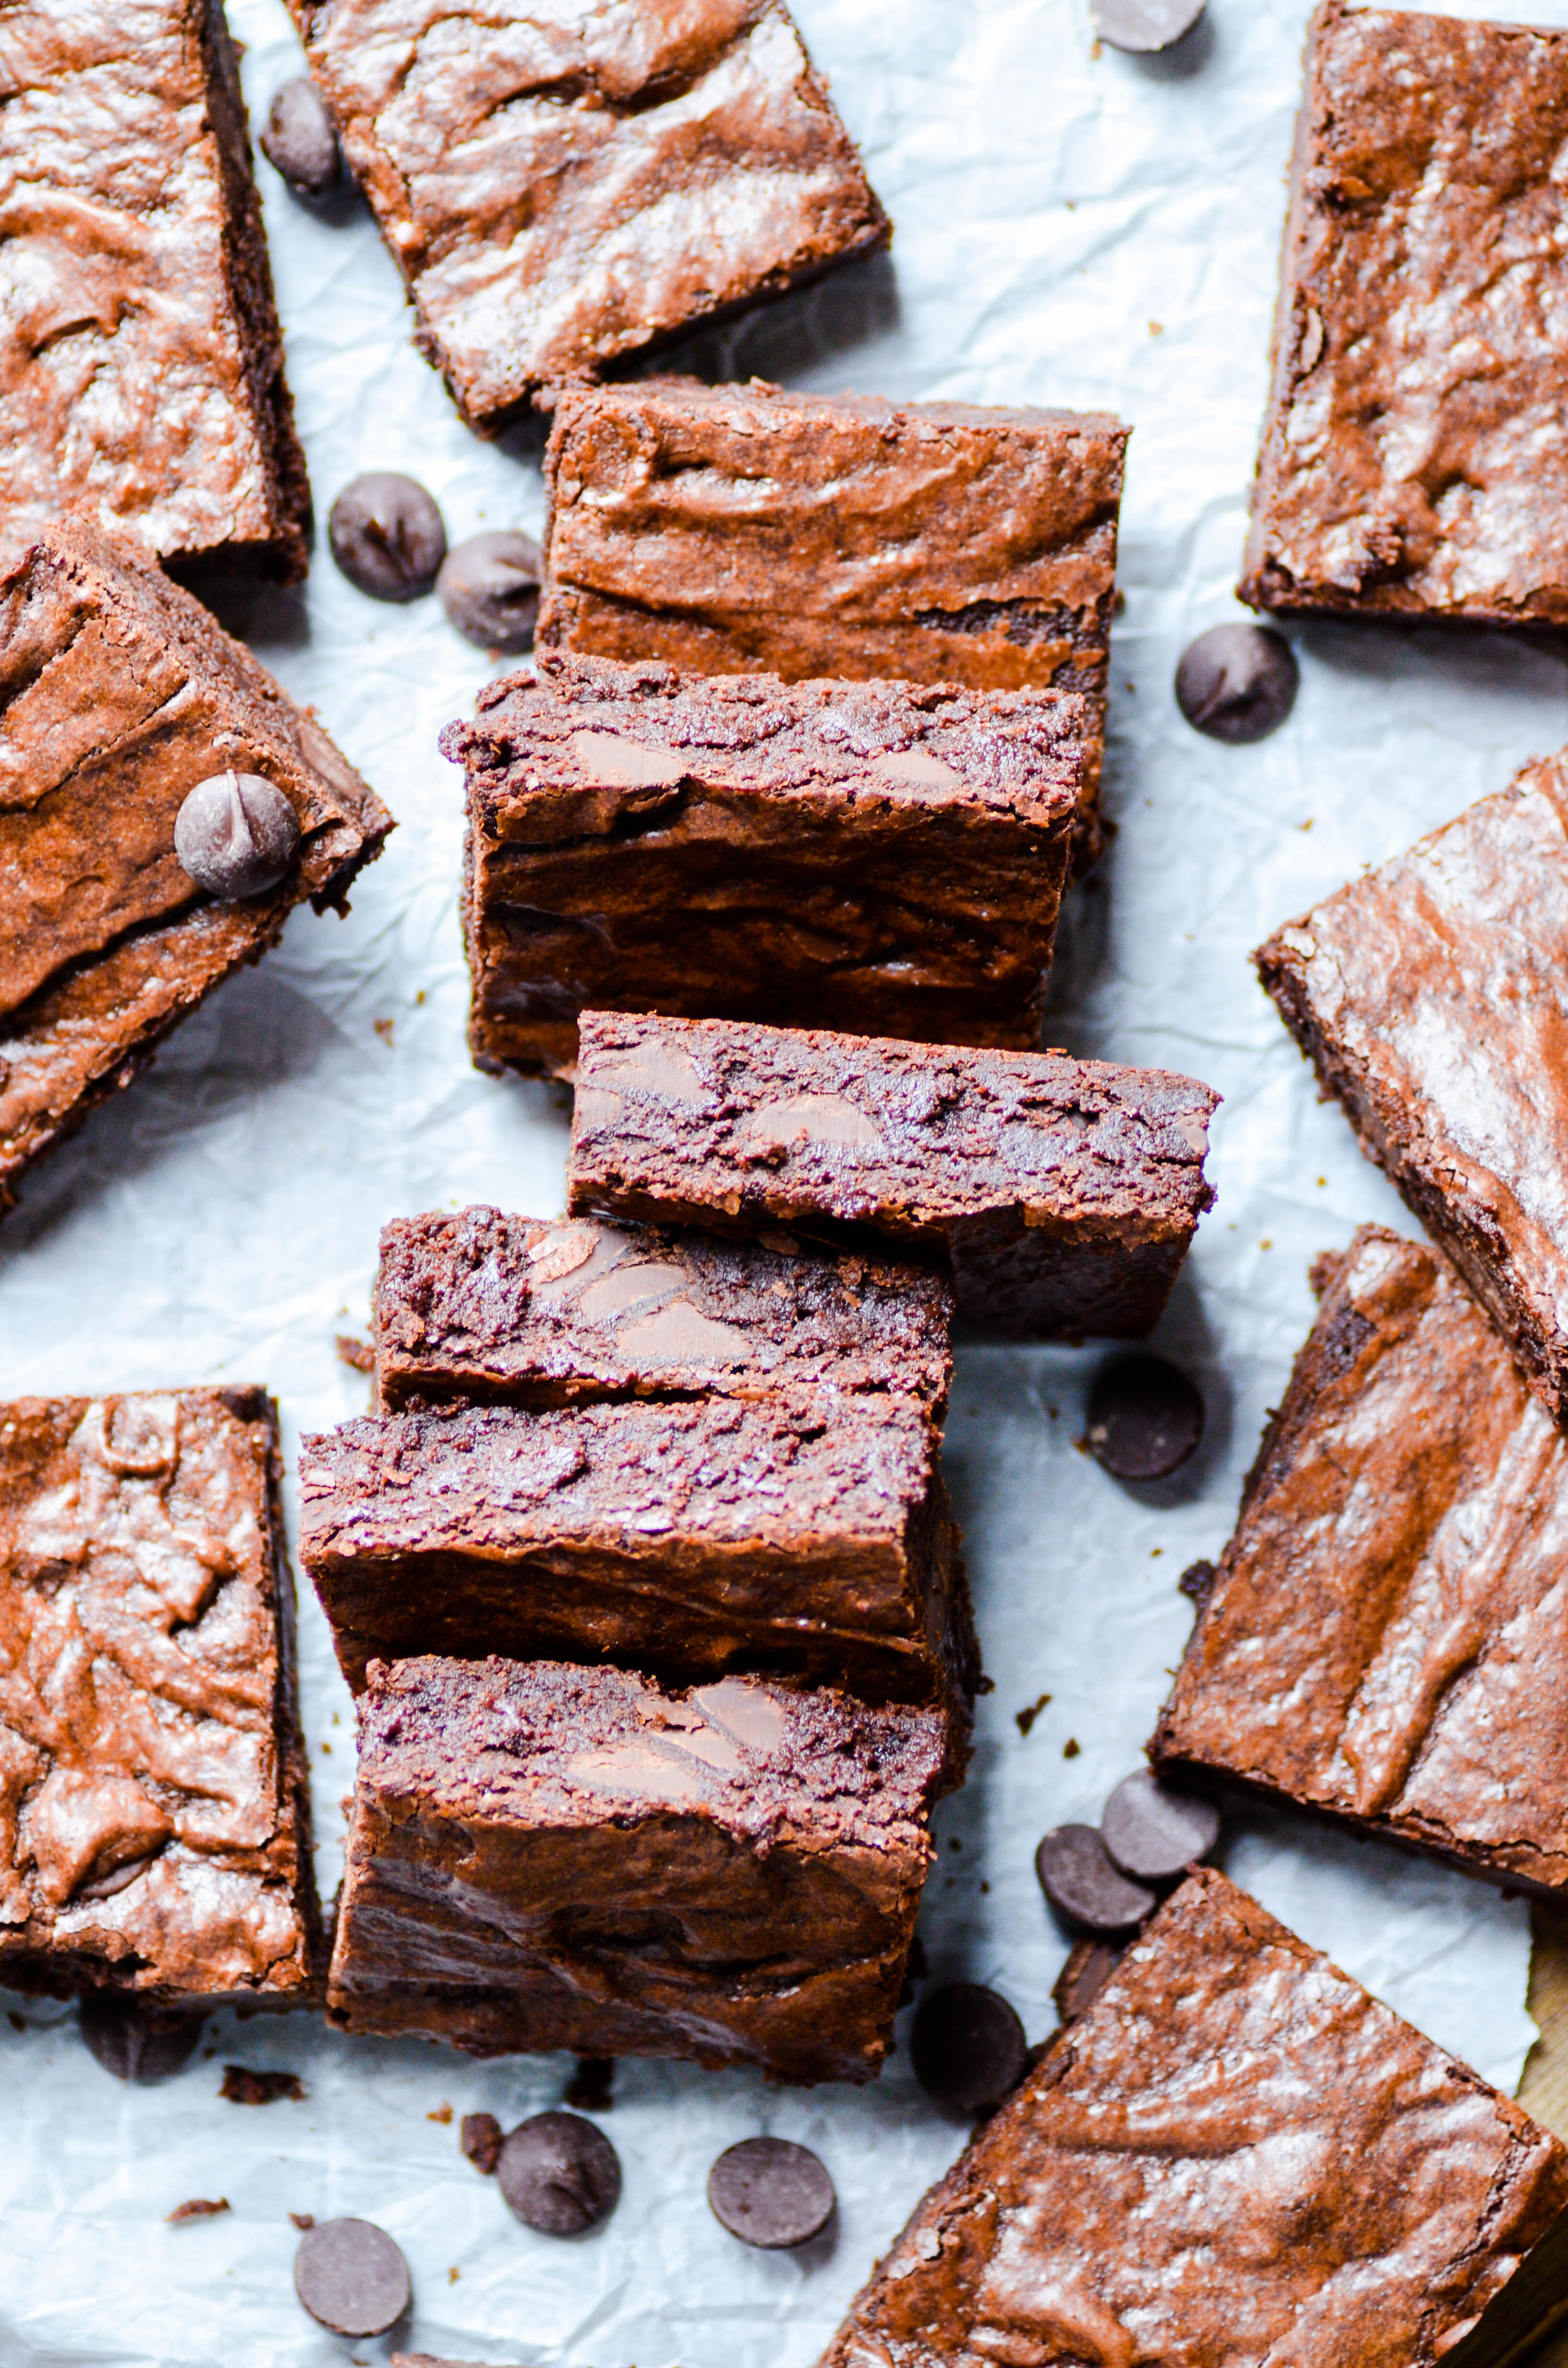 These Browned Butter Brownies are rich and fudgy, the absolutely perfect brownie!